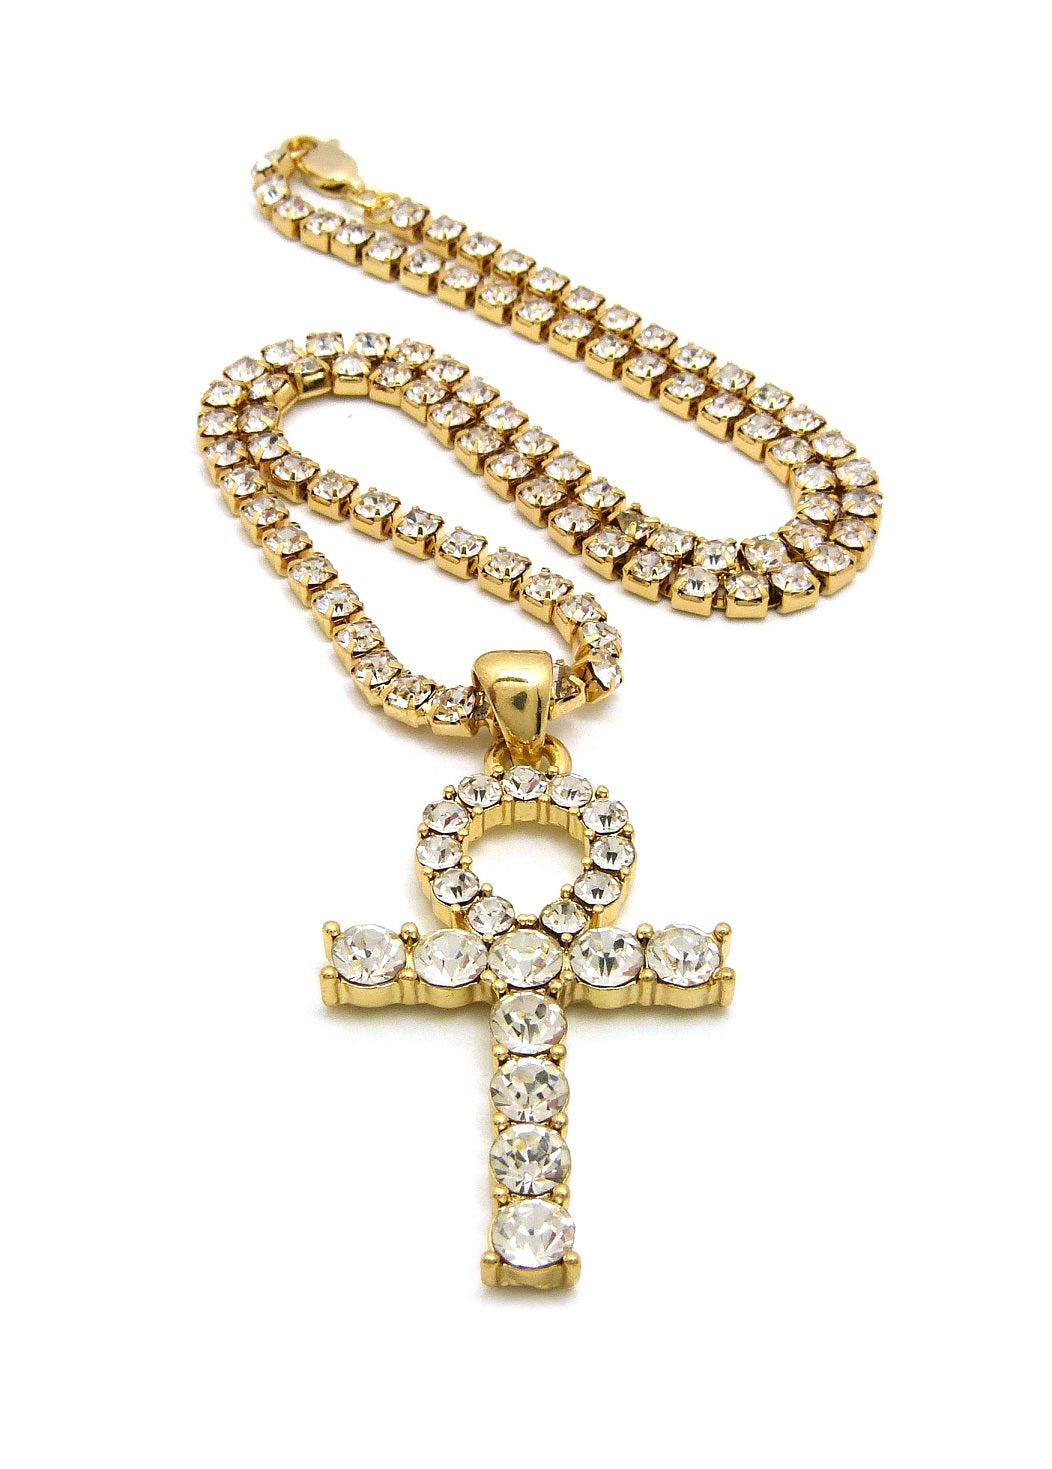 14K Gold Plated Iced Out Akhn Tennis Chain Necklace